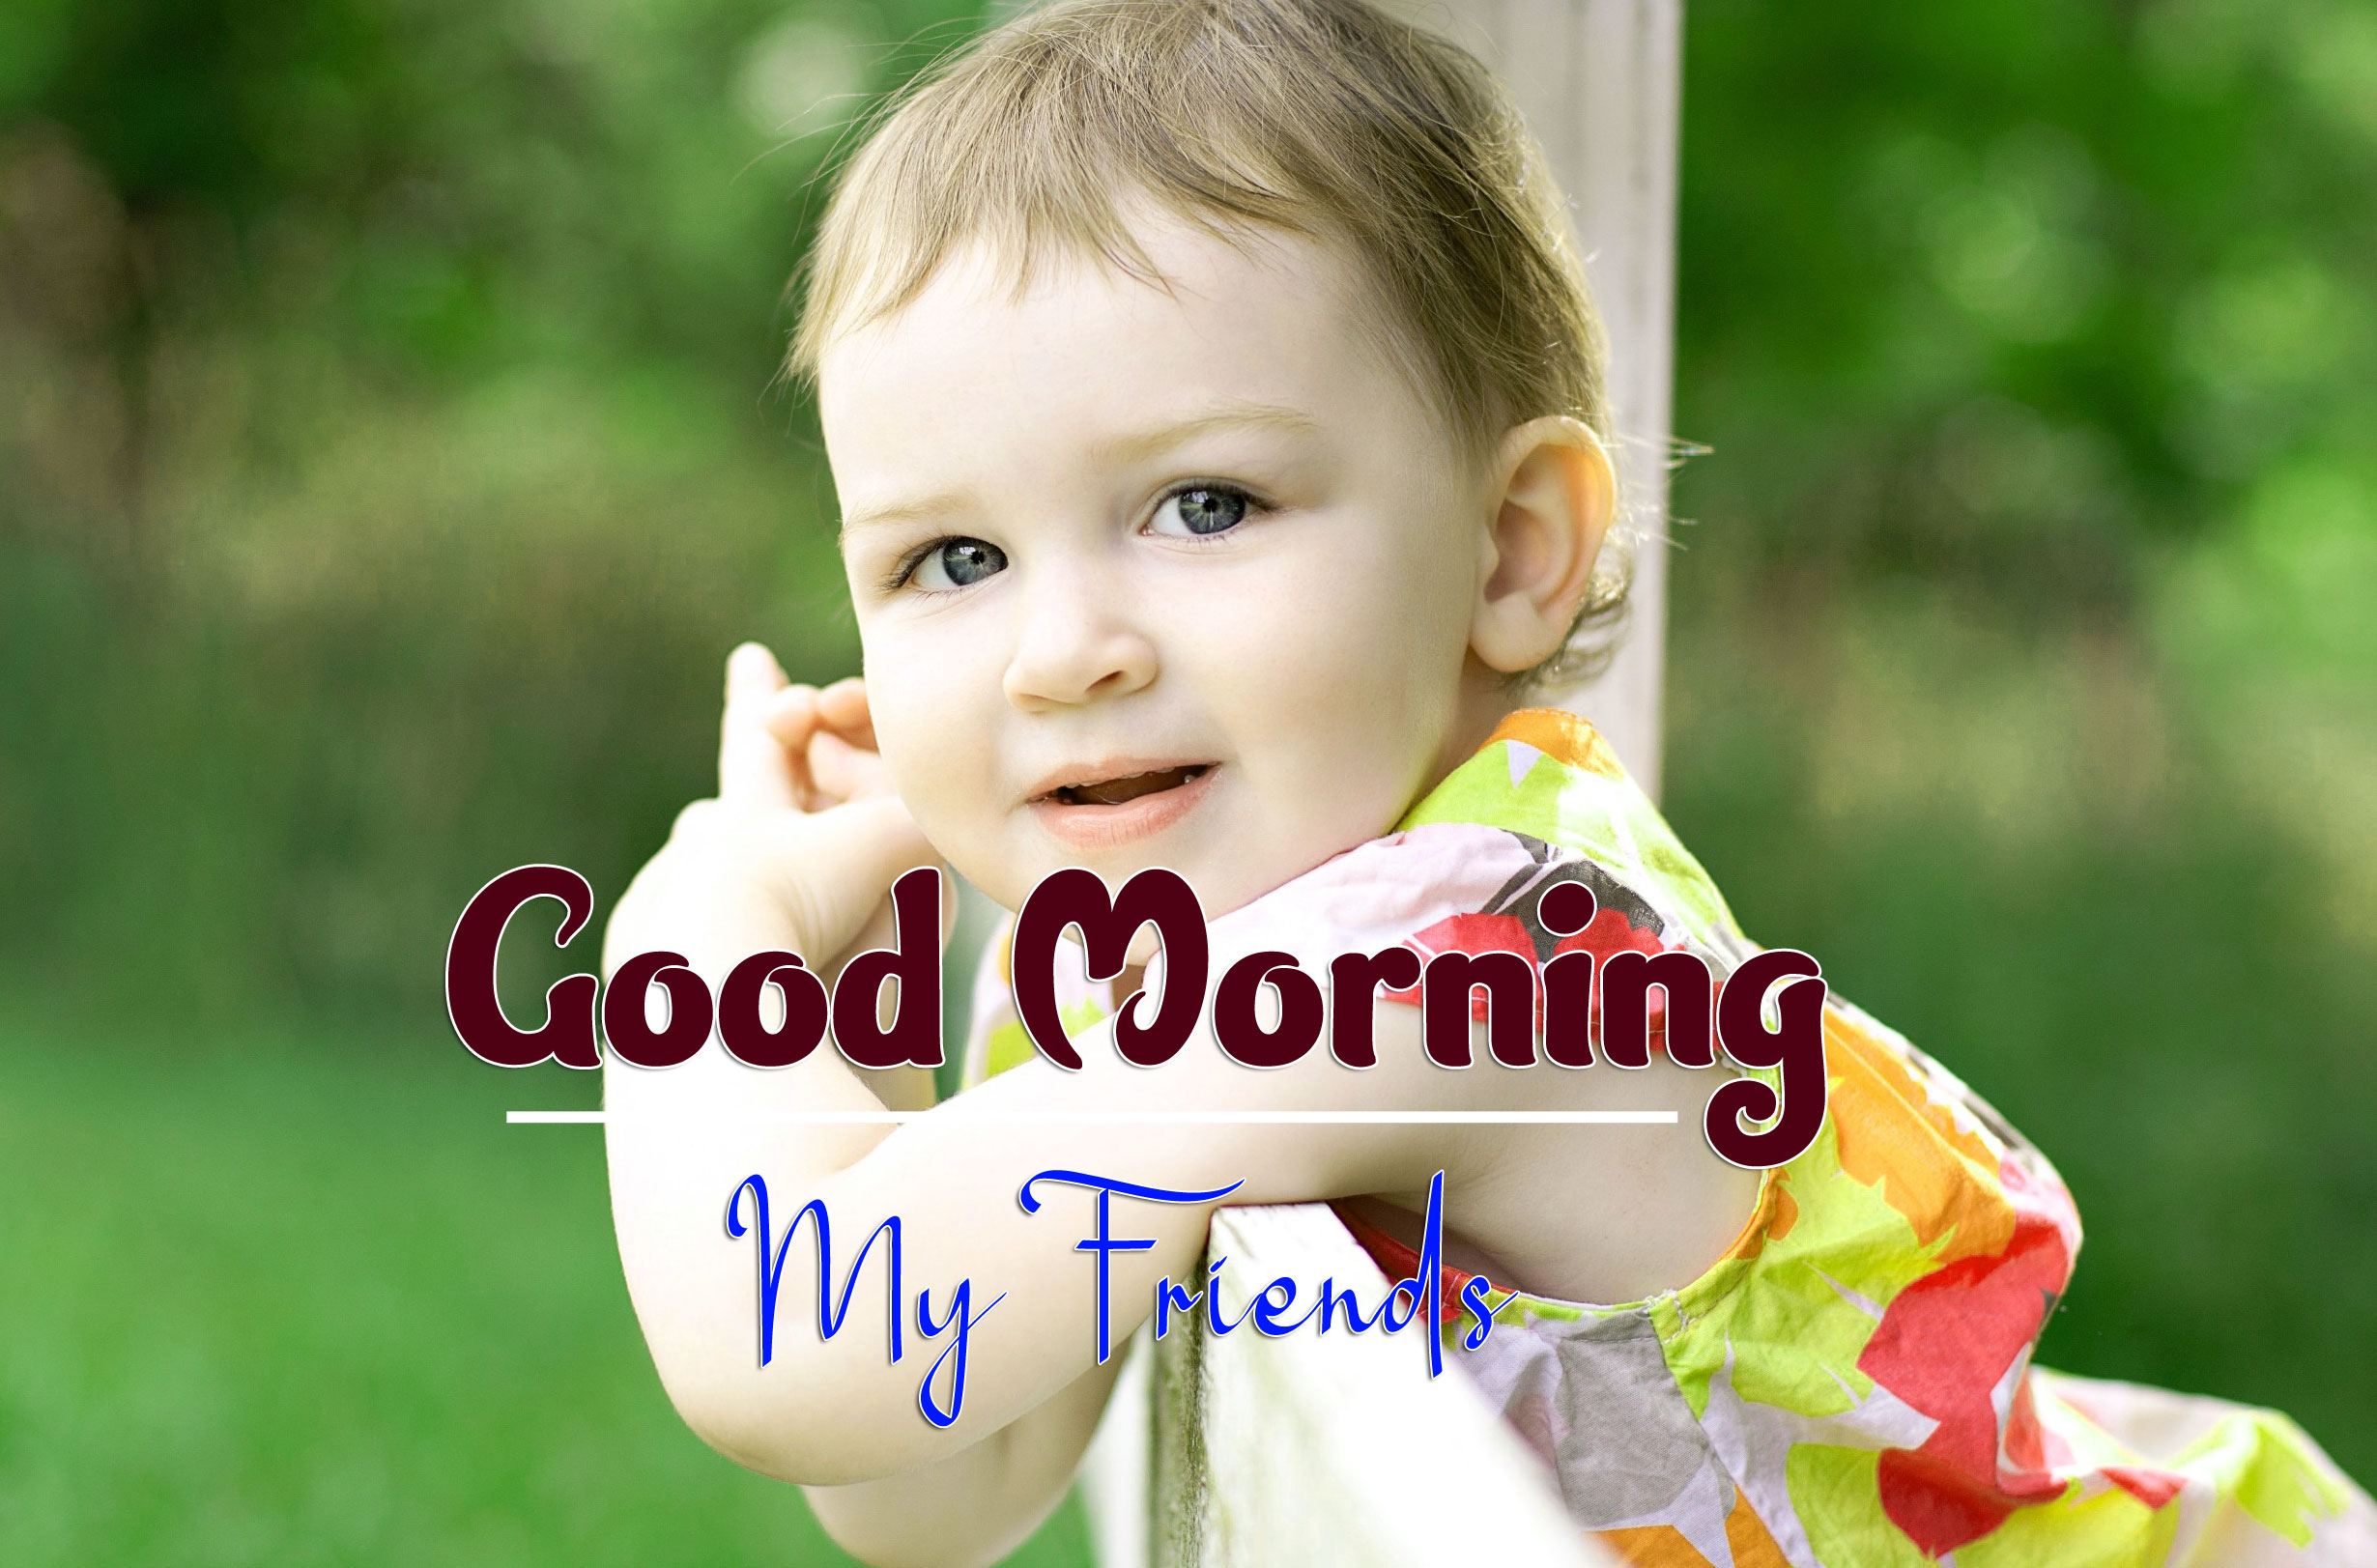 good morning images photo for download